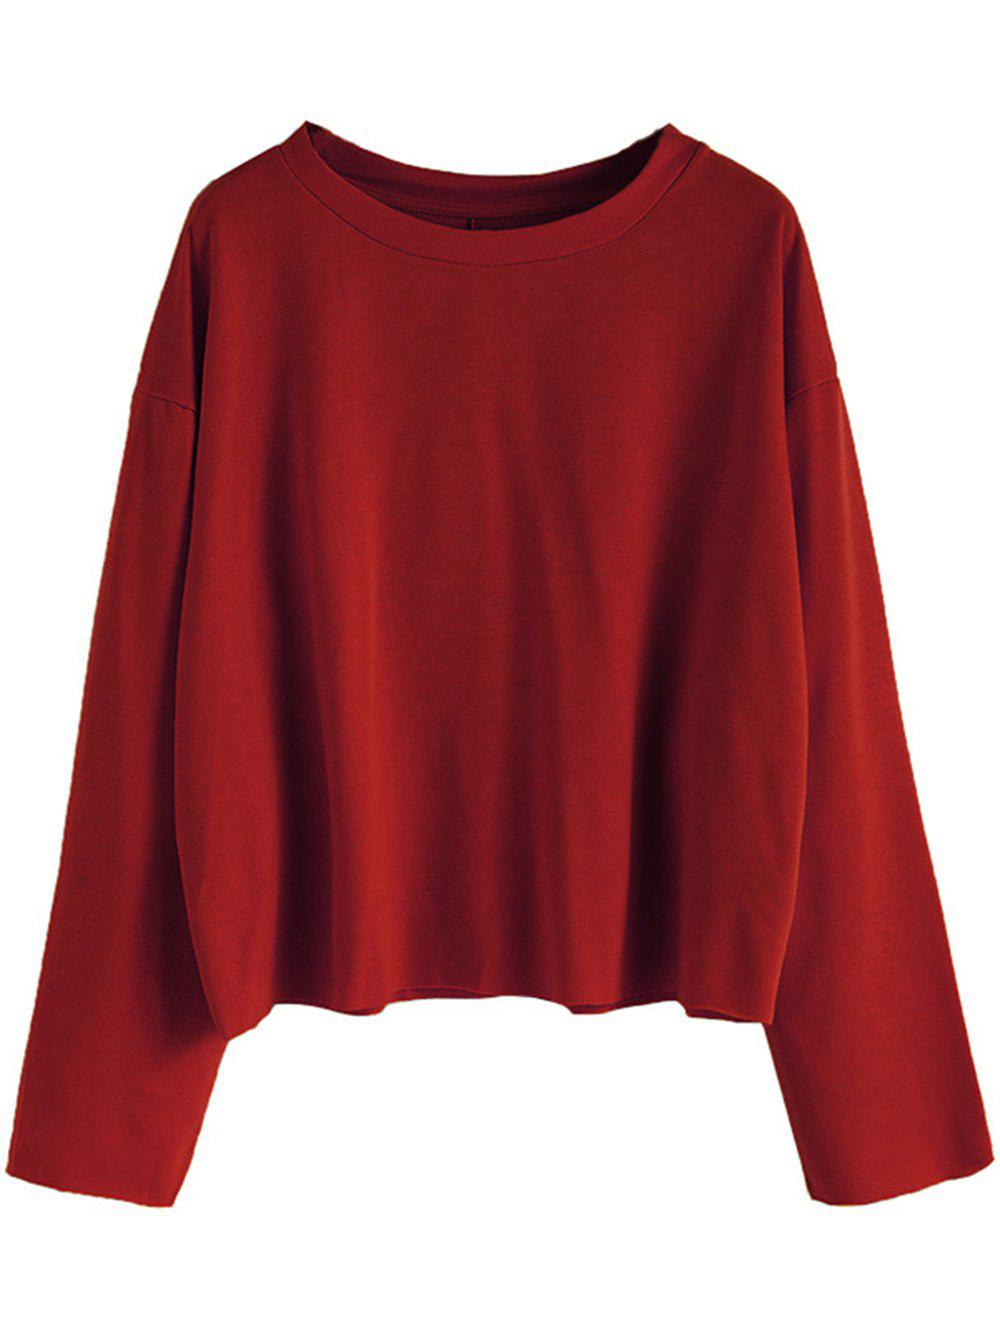 Hot Womens Casual Round Neck  Sweatshirt  Long Sleeve Pullover Tops